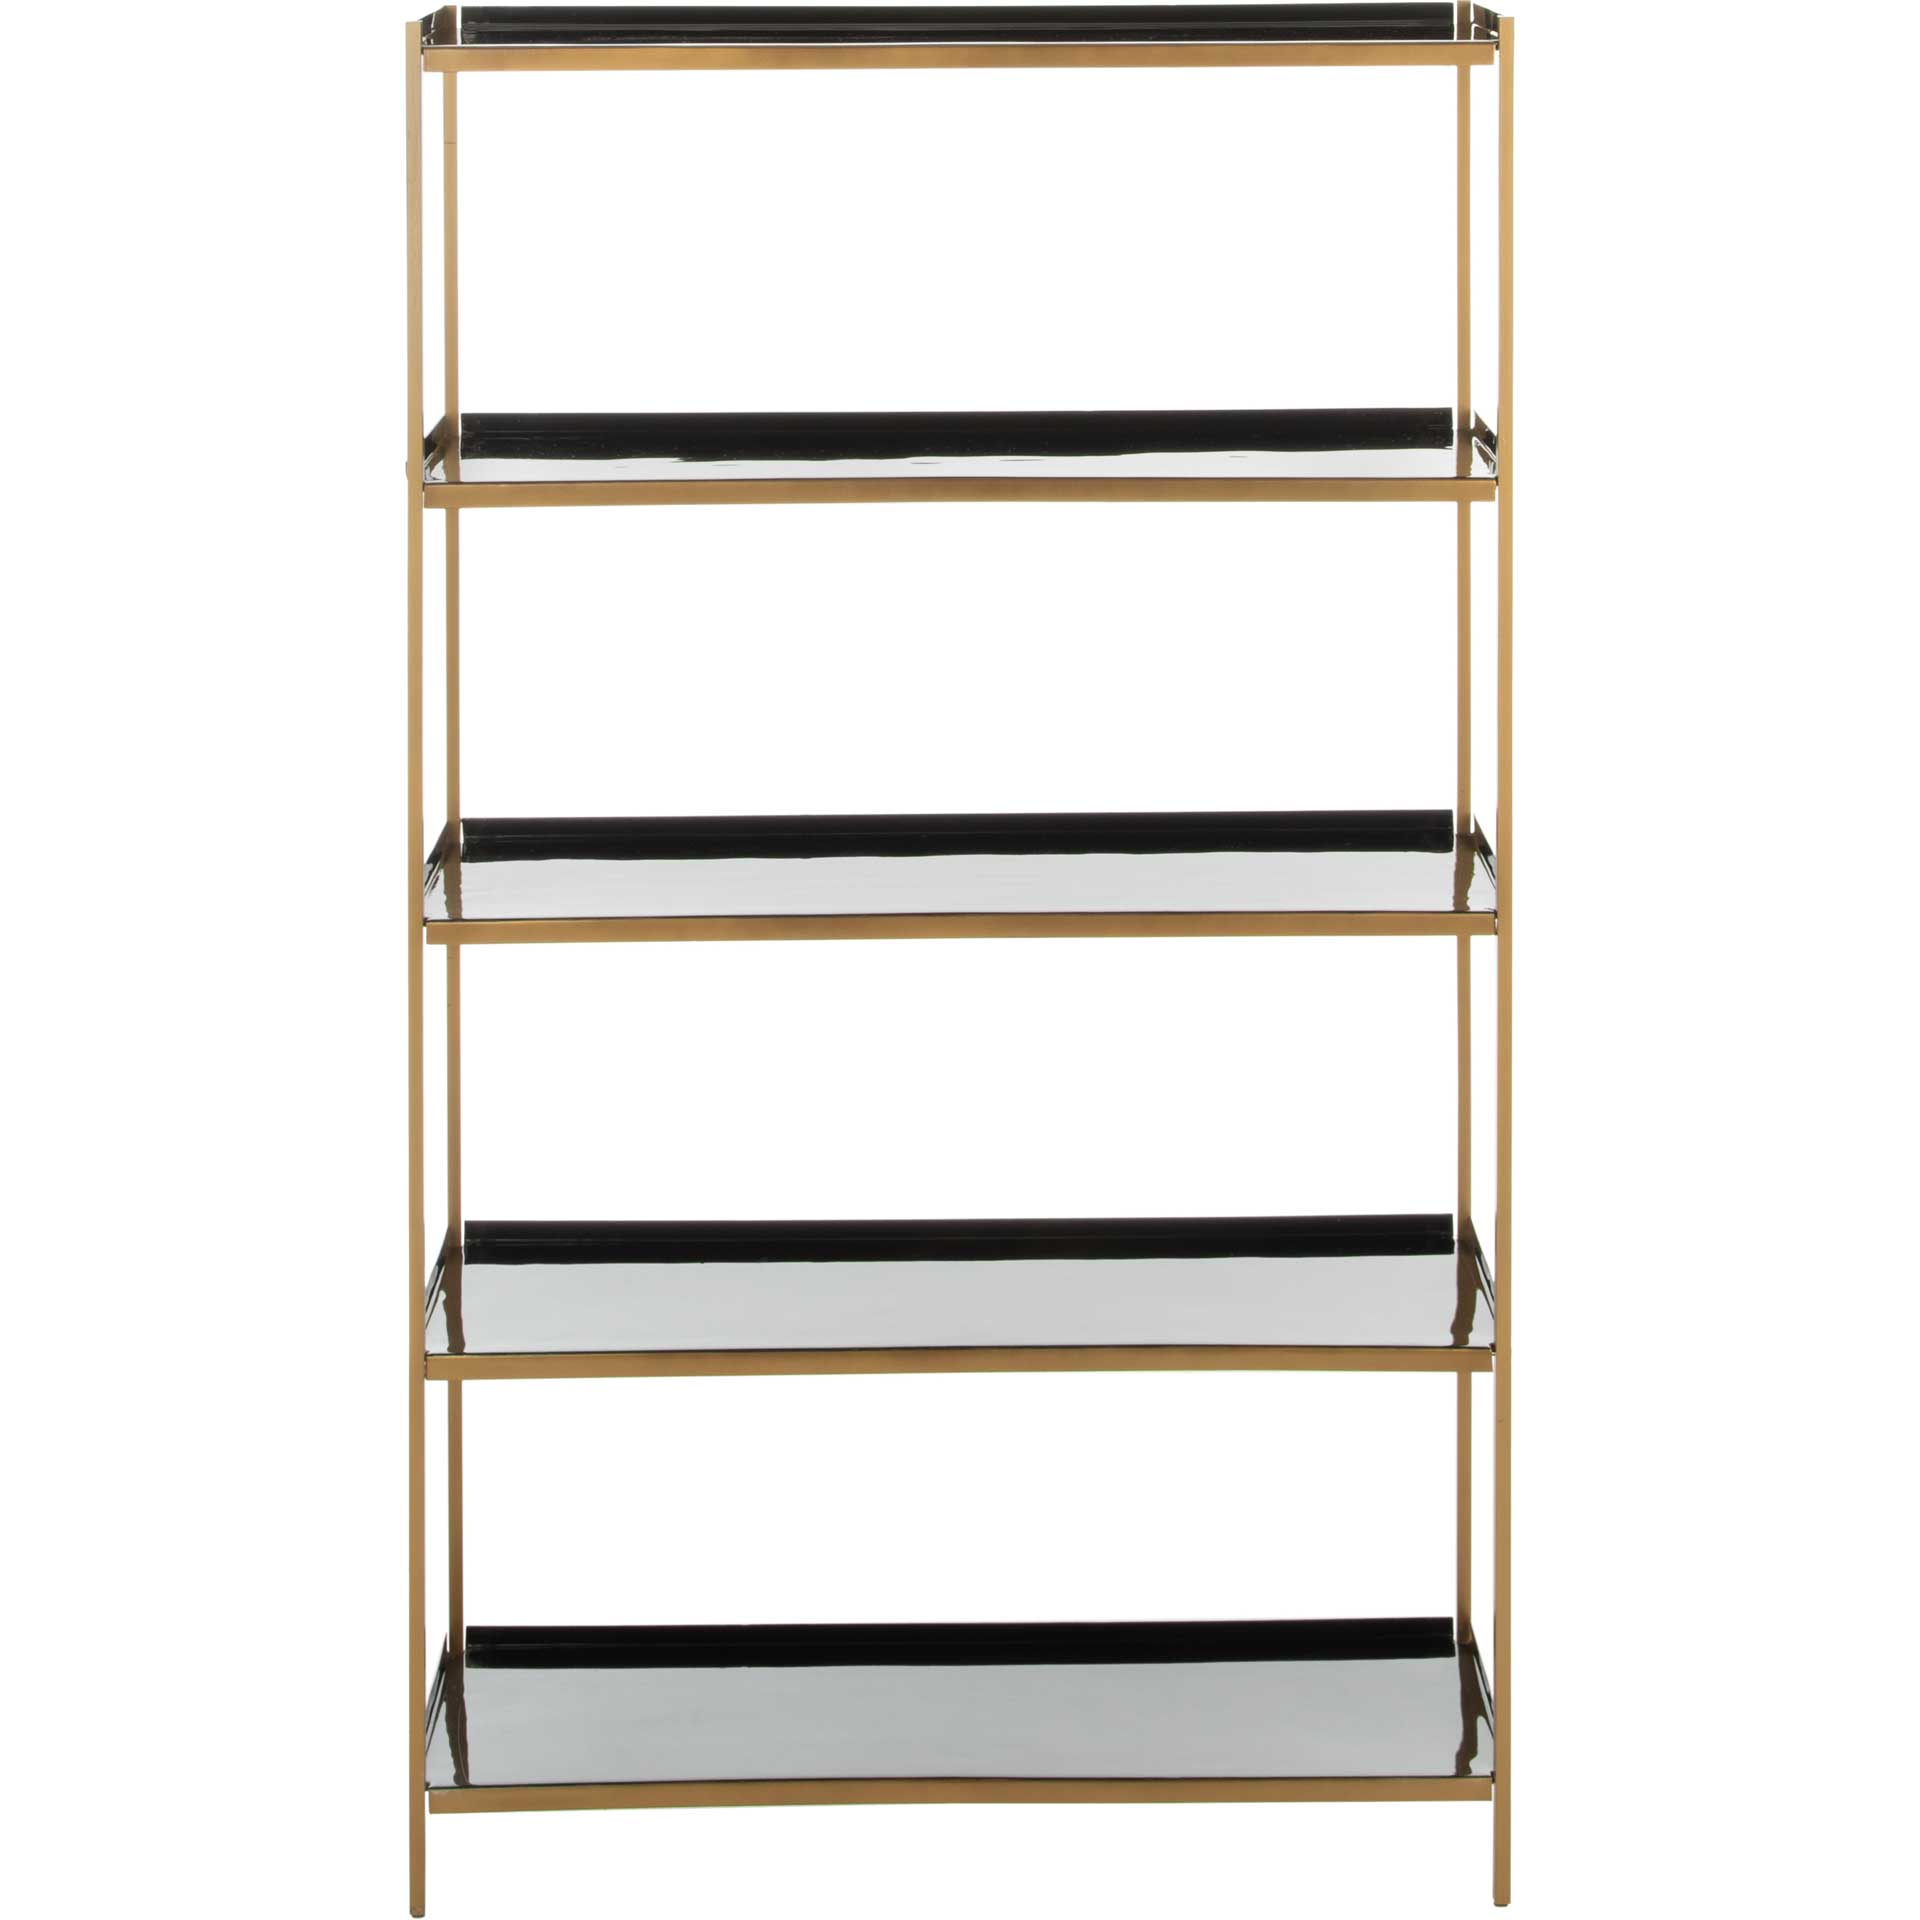 Judson 5 Tier Etagere Black/Brass